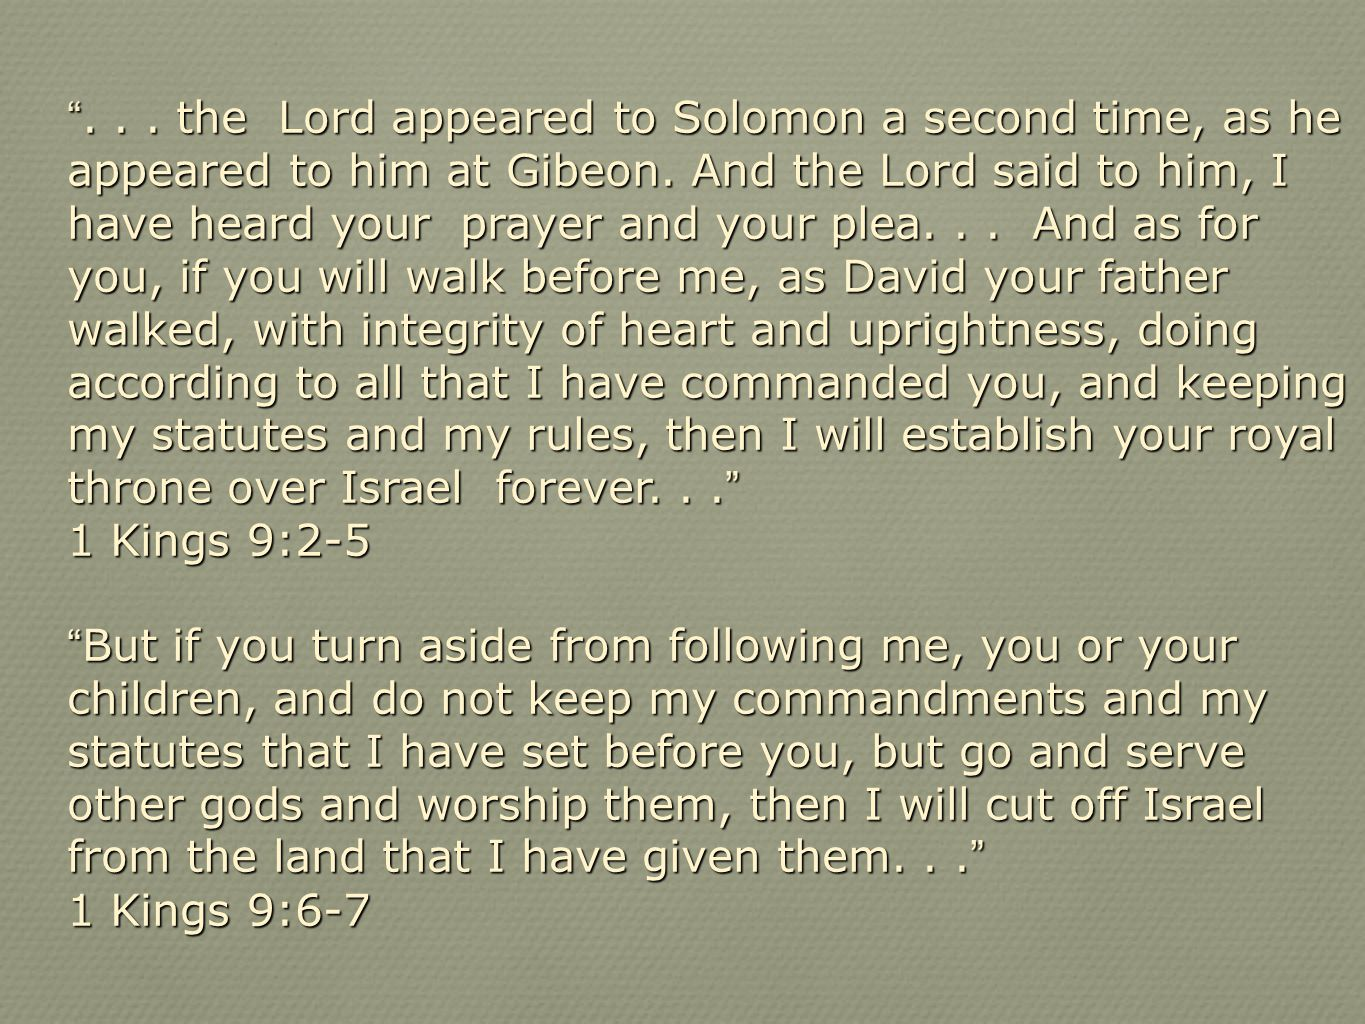 . . . the Lord appeared to Solomon a second time, as he appeared to him at Gibeon. And the Lord said to him, I have heard your prayer and your plea. . . And as for you, if you will walk before me, as David your father walked, with integrity of heart and uprightness, doing according to all that I have commanded you, and keeping my statutes and my rules, then I will establish your royal throne over Israel forever. . .